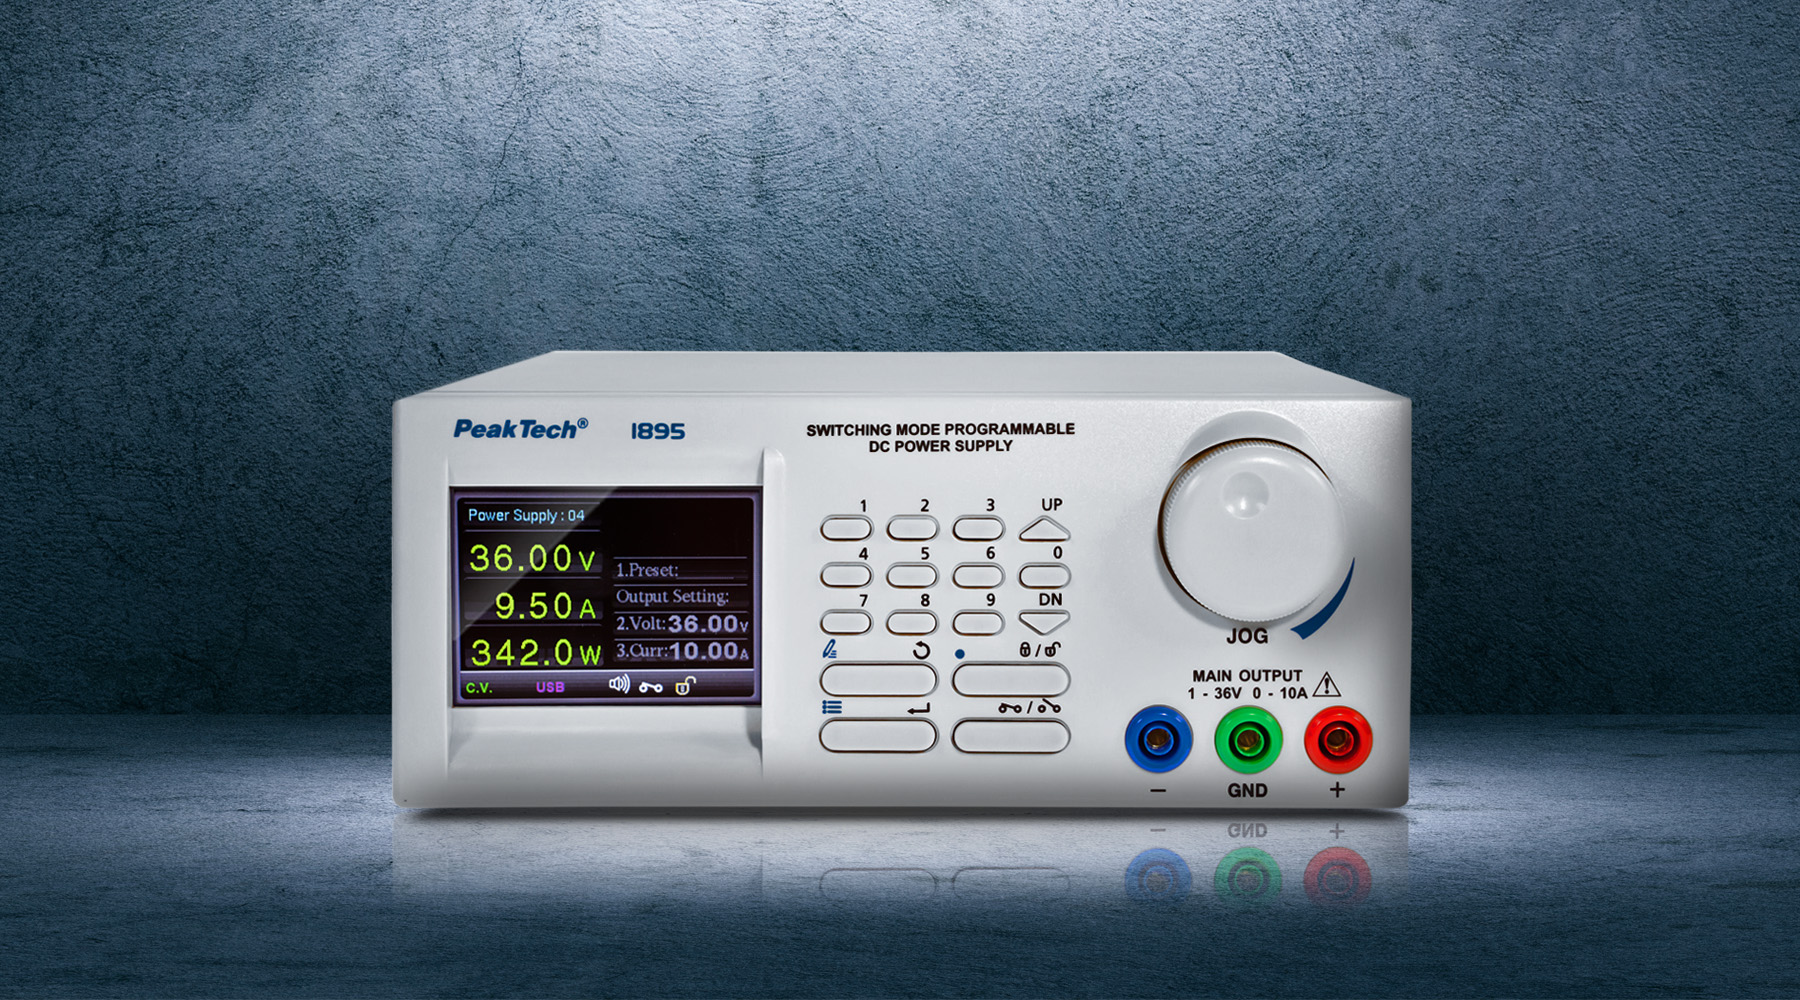 Programmable switching power supplies